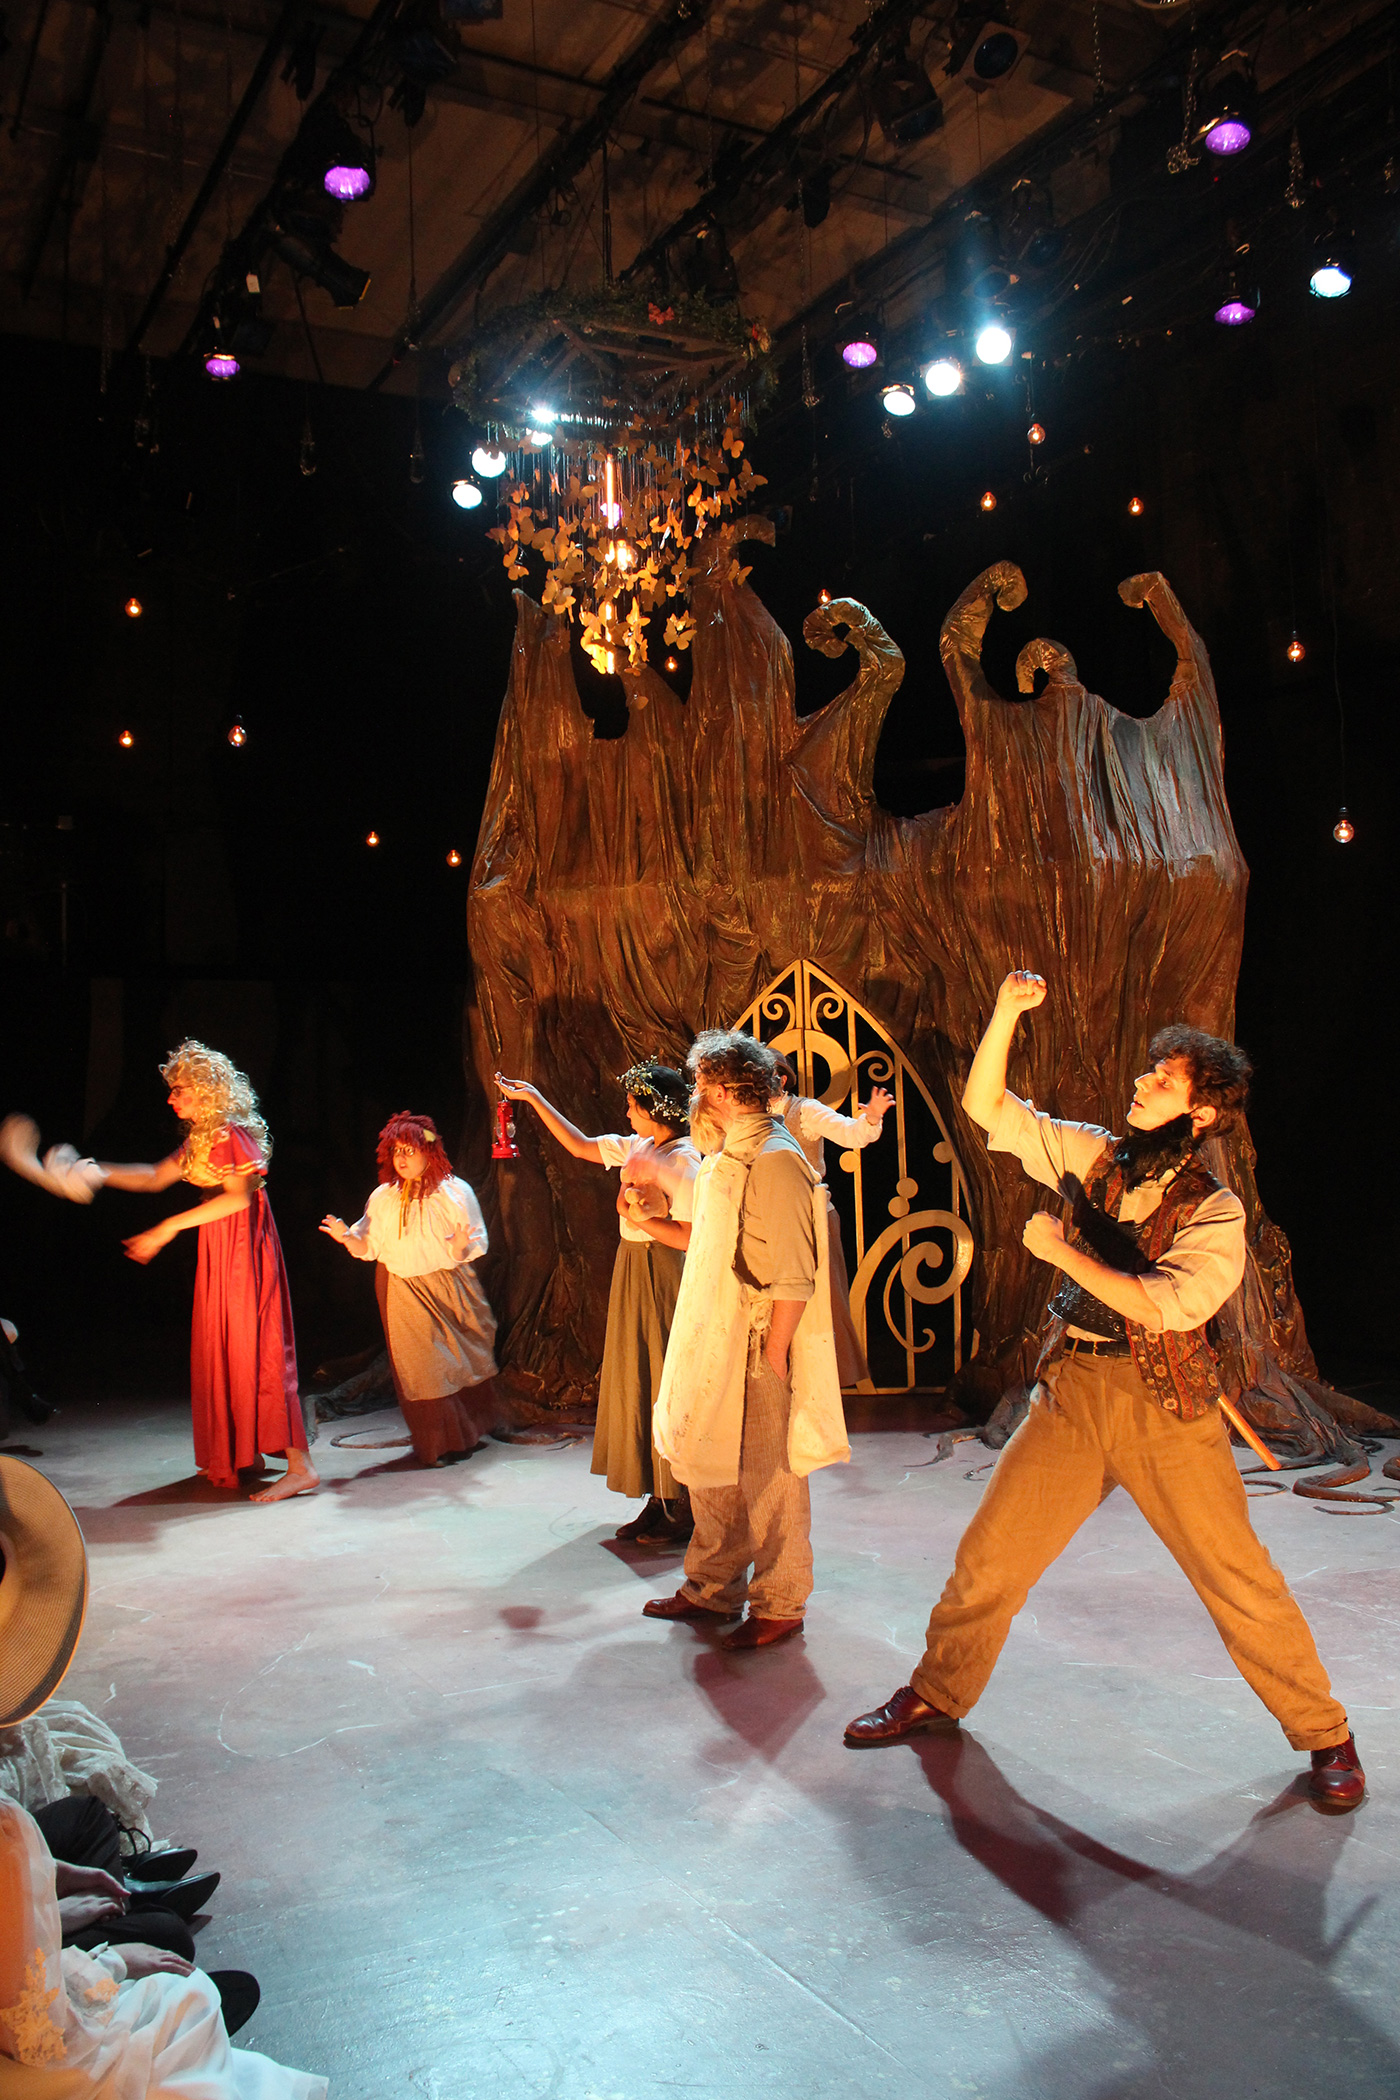 UMass Lowell students perform A Midsummer Night's Dream, the comedy written by William Shakespeare in 1595/96.